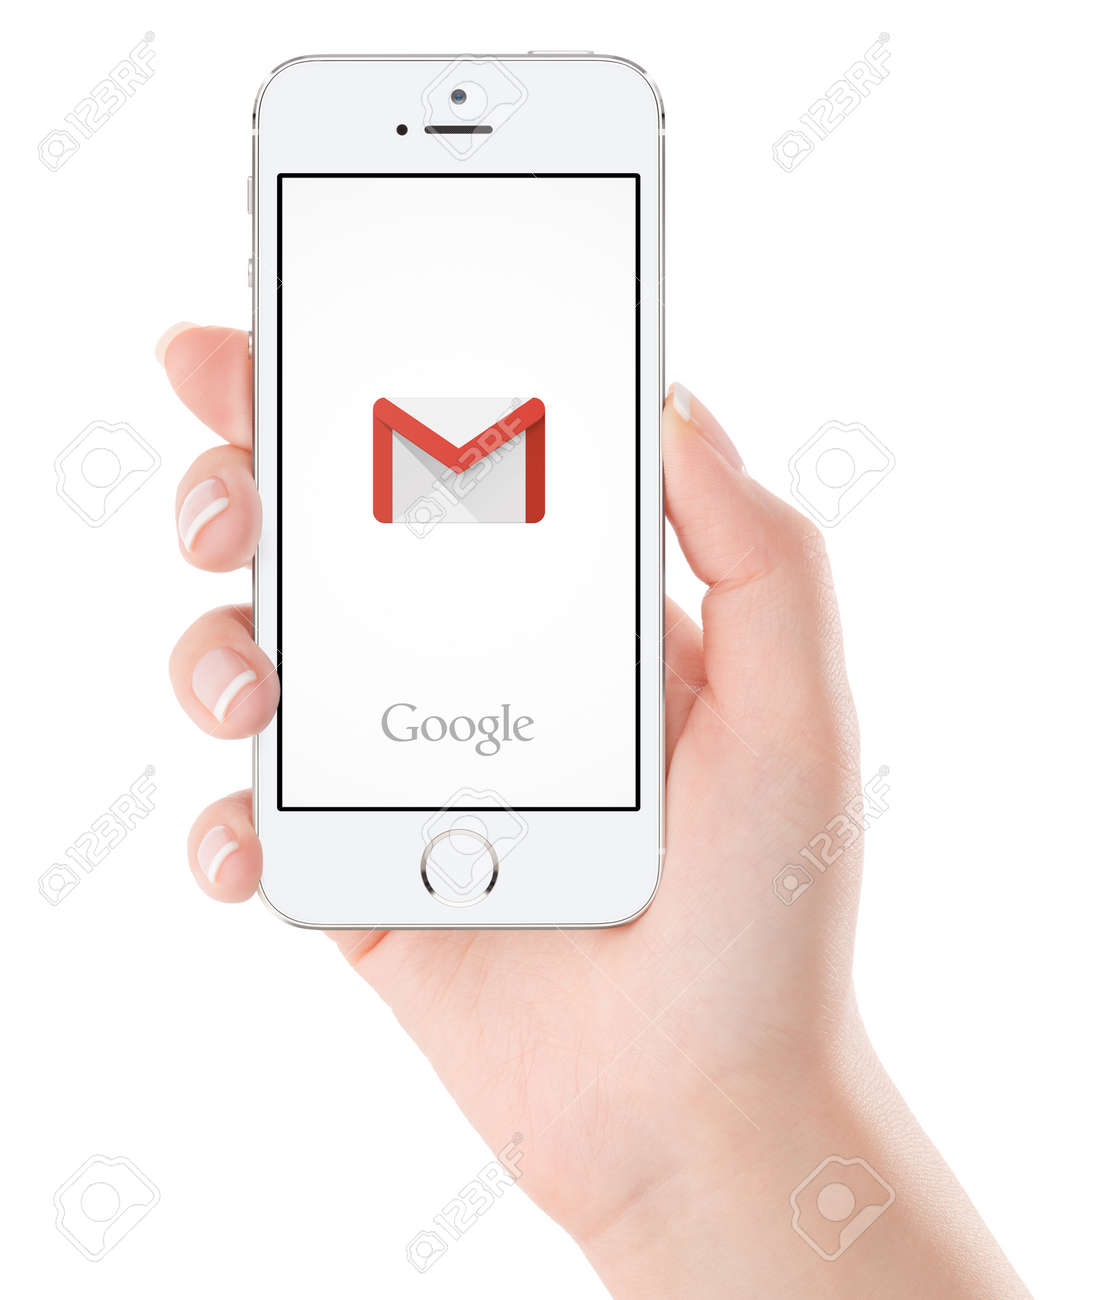 Varna, Bulgaria - February 02, 2015: Google Gmail application logo on the white Apple iPhone 5s display in female hand. Gmail is a free e-mail service provided by Google. Isolated on white background. - 49200370